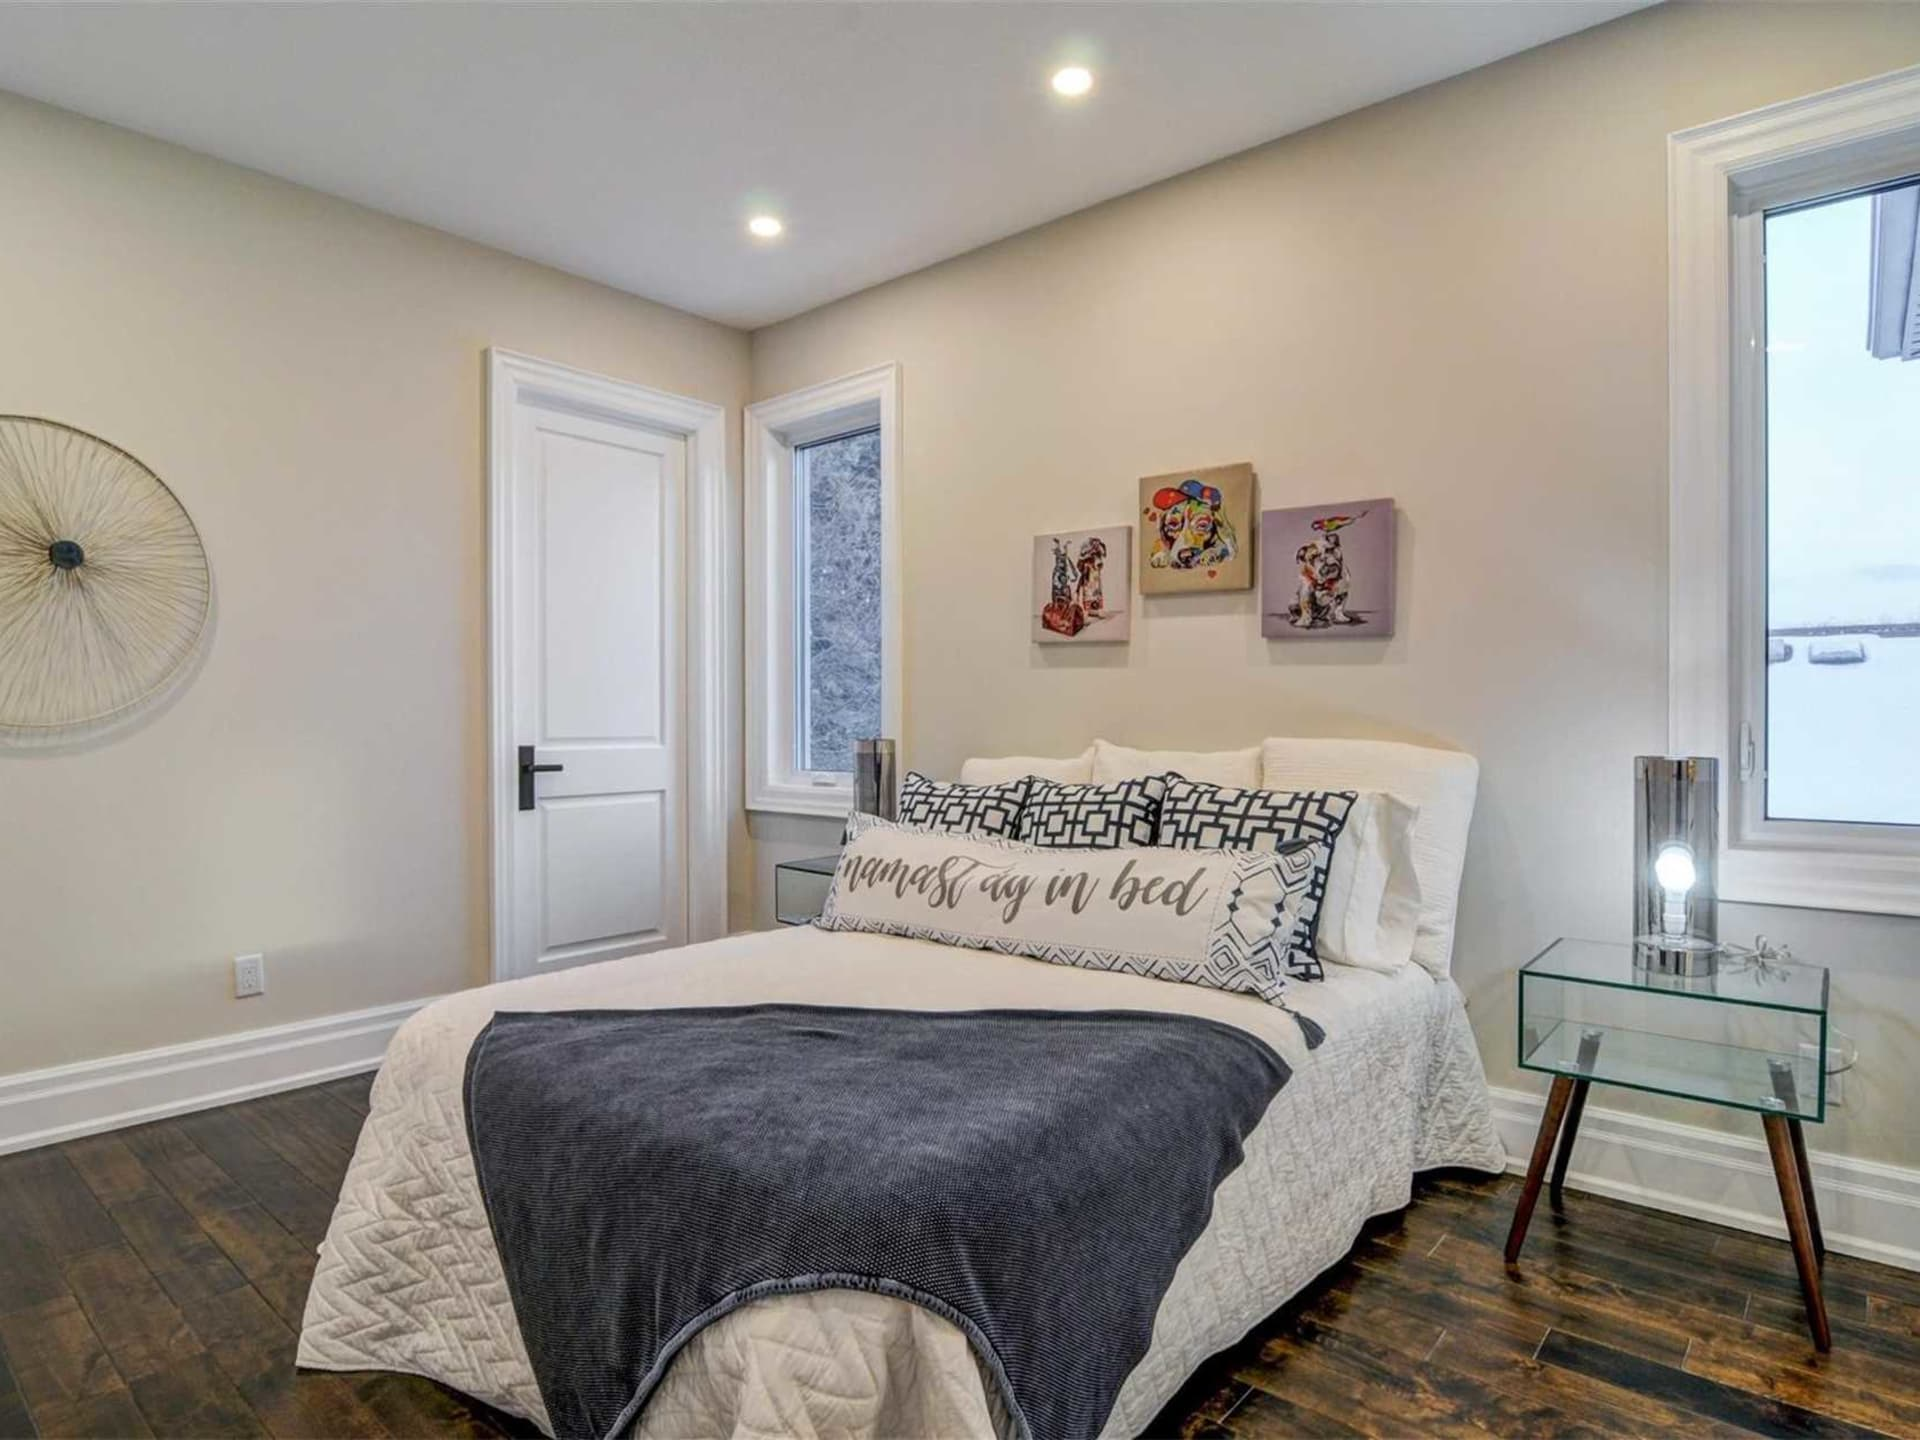 Fourth Bedroom, 9 Lloyd Manor, Toronto Home Staging